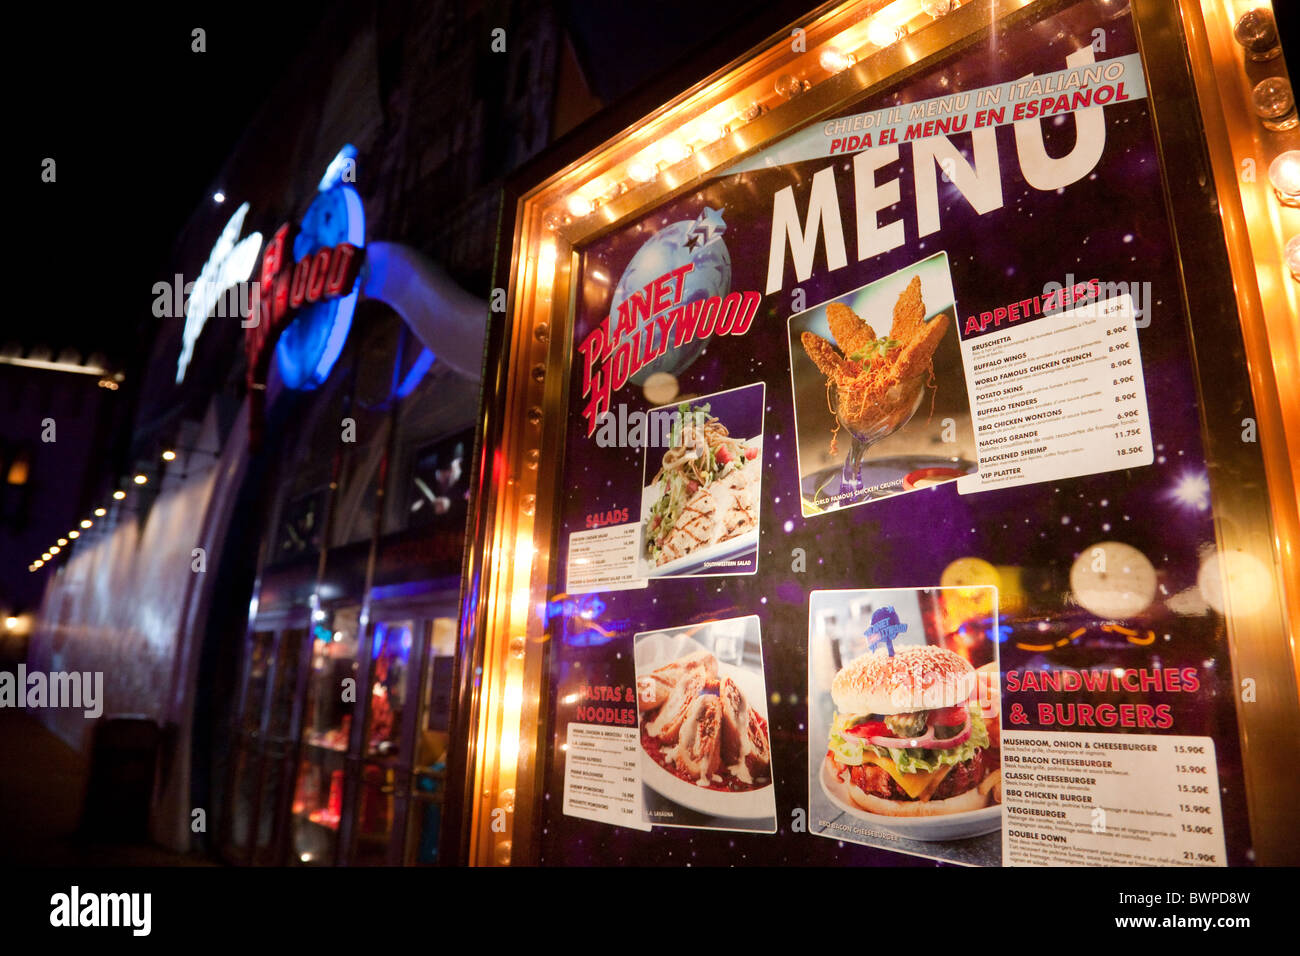 The Exterior Of The Planet Hollywood Restaurant With Its Menu Stock Photo Alamy